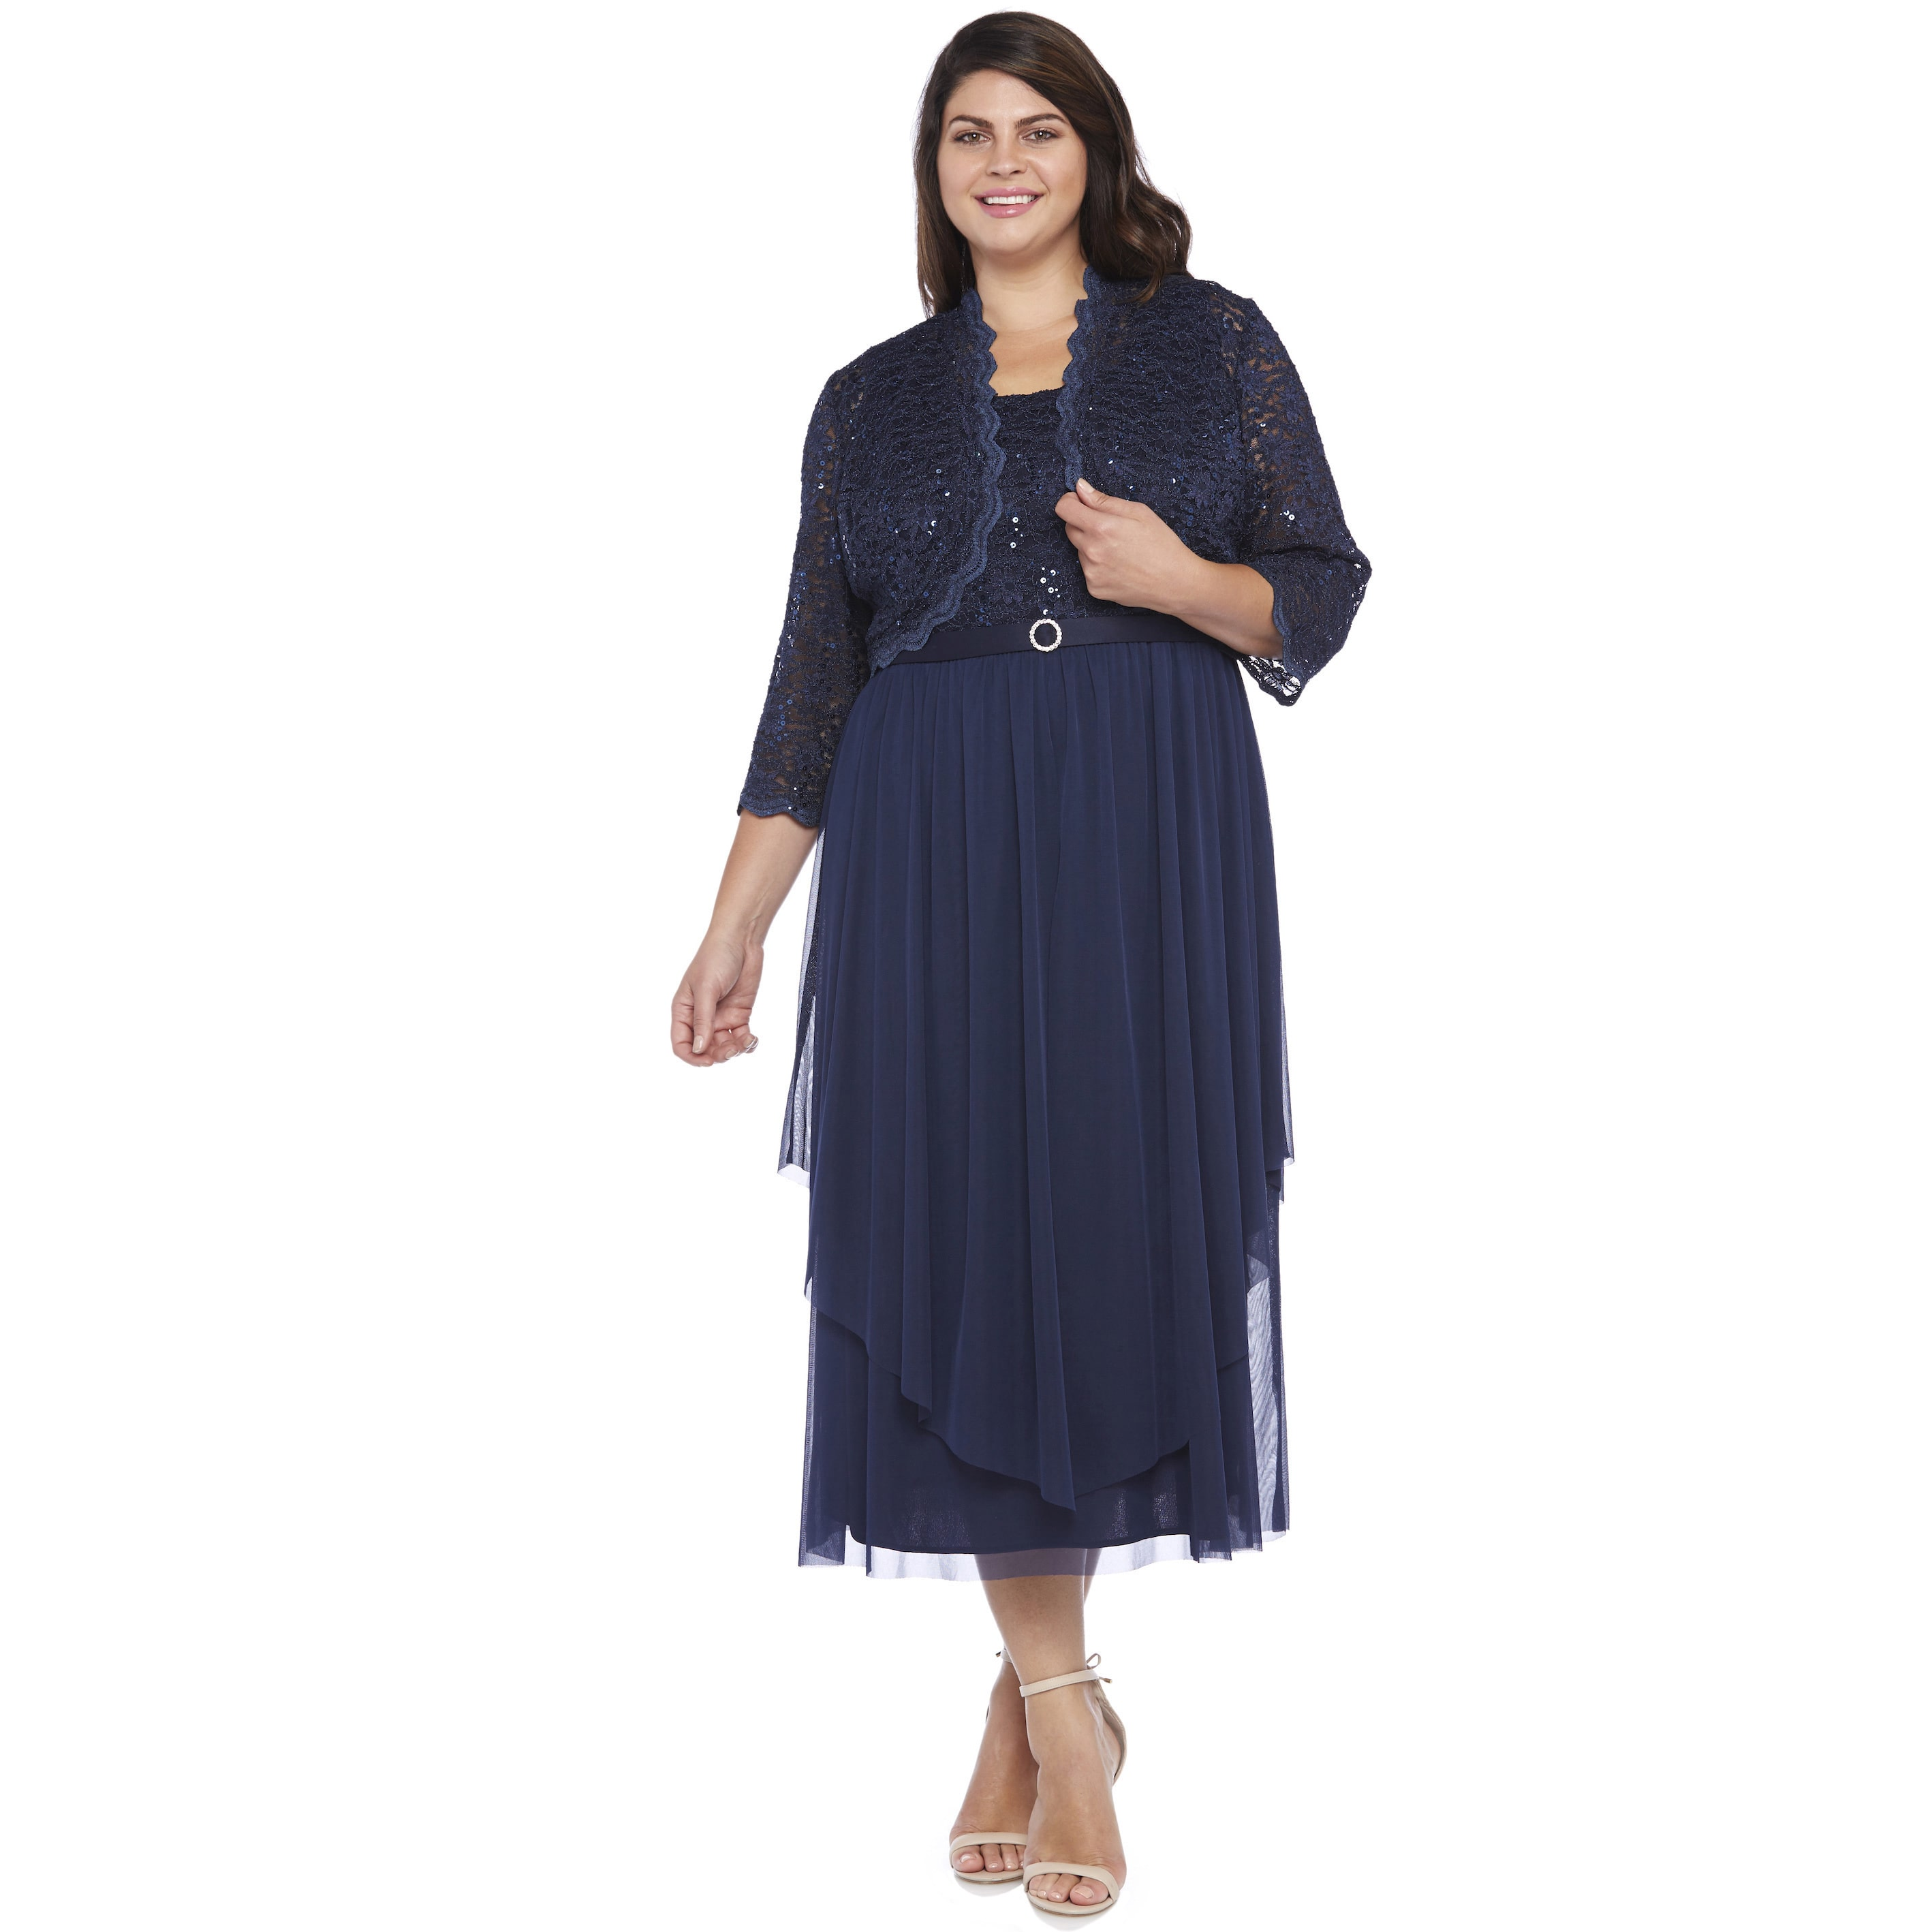 21f8920db08 Plus Size Lace Dresses With Jacket - Gomes Weine AG